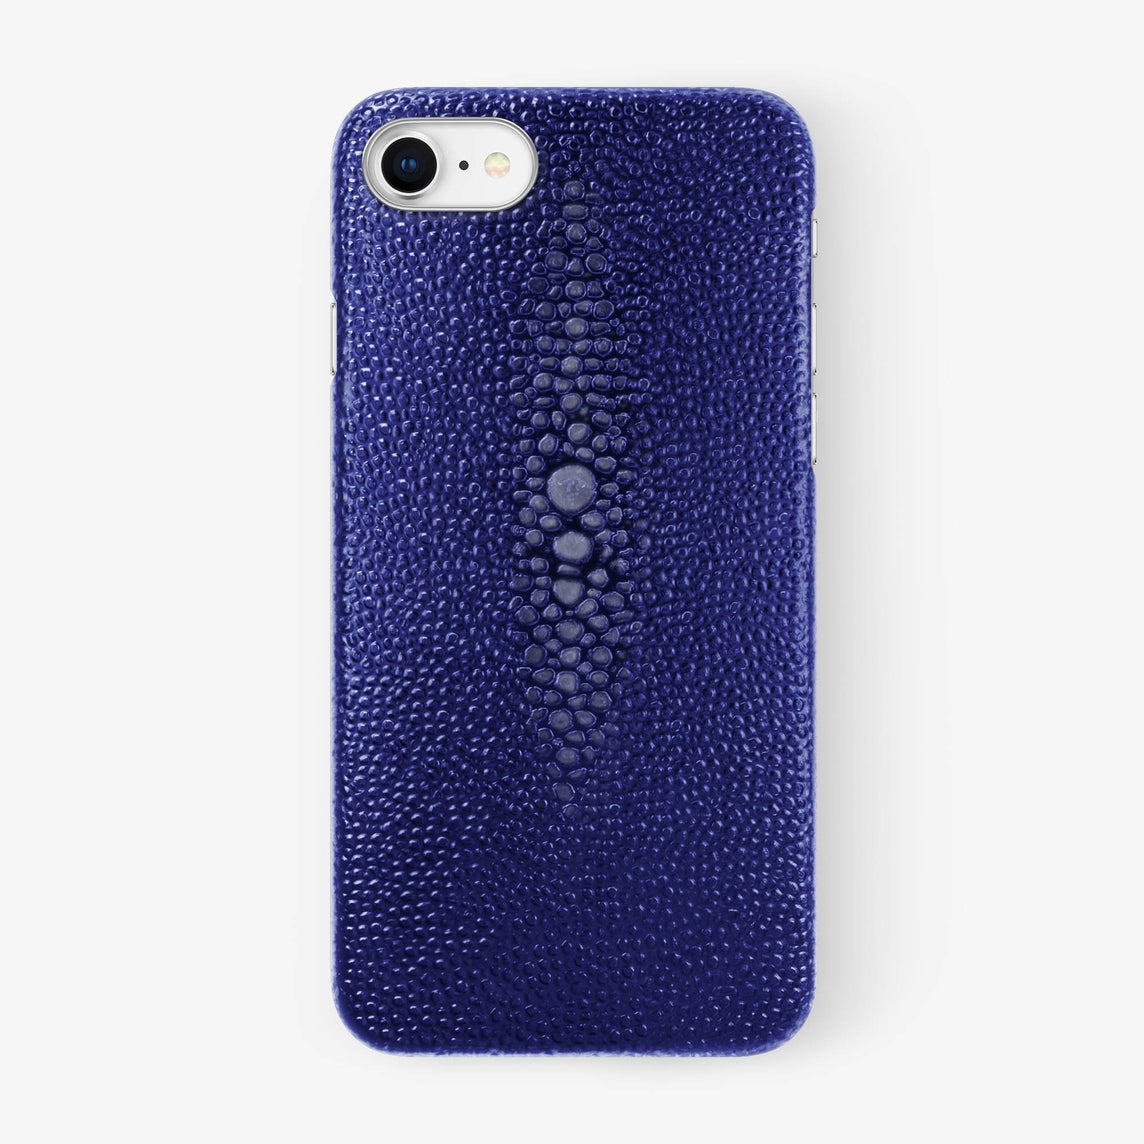 Stingray Case iPhone 7/8 | Blue - Stainless Steel